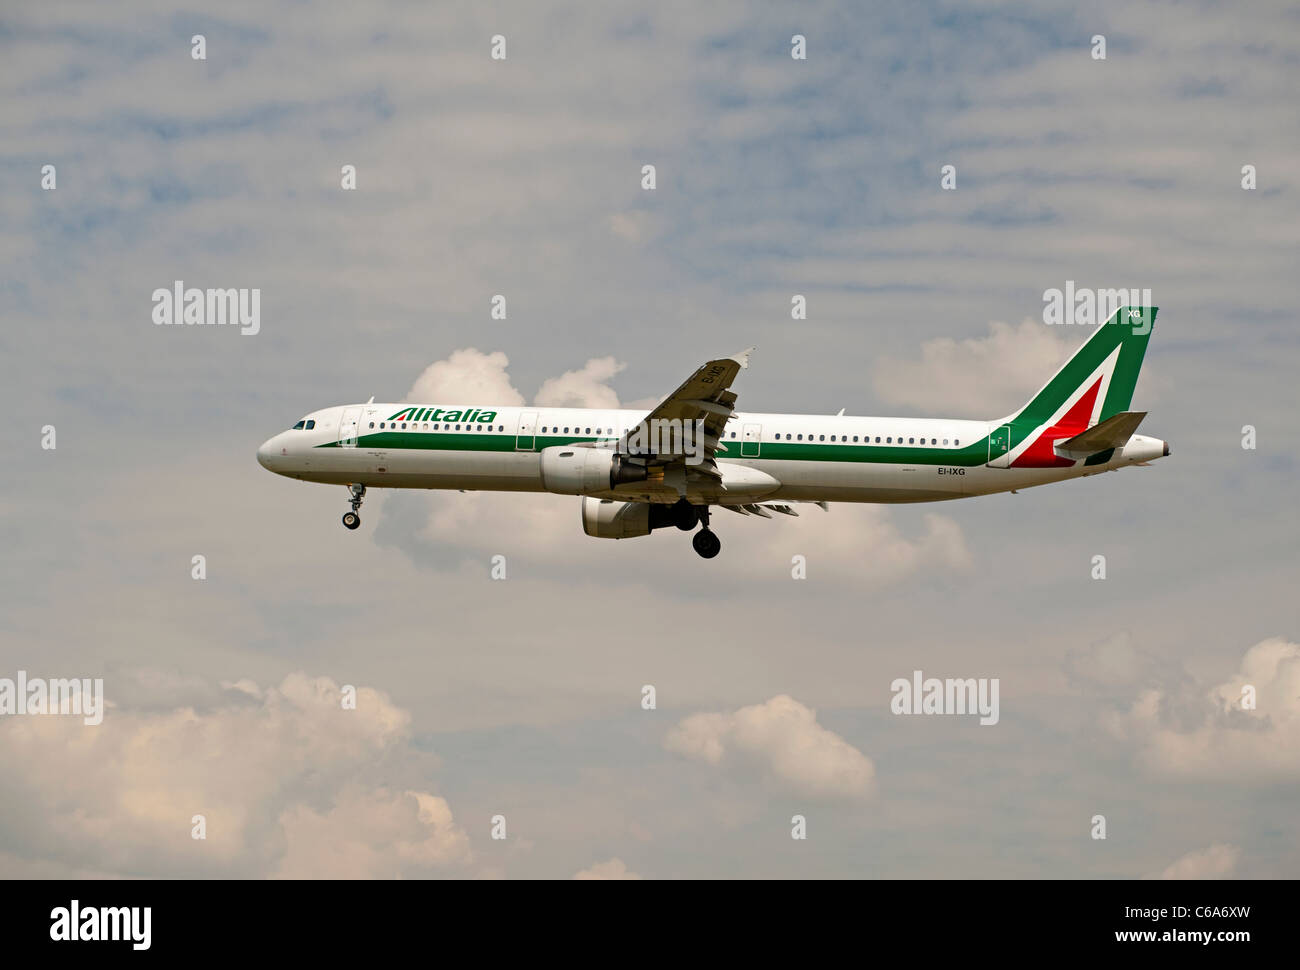 Alitalia A321-112 'Plaza dei Miracoil Pisa' approaching London Heathrow Airport.  SCO 7572 - Stock Image